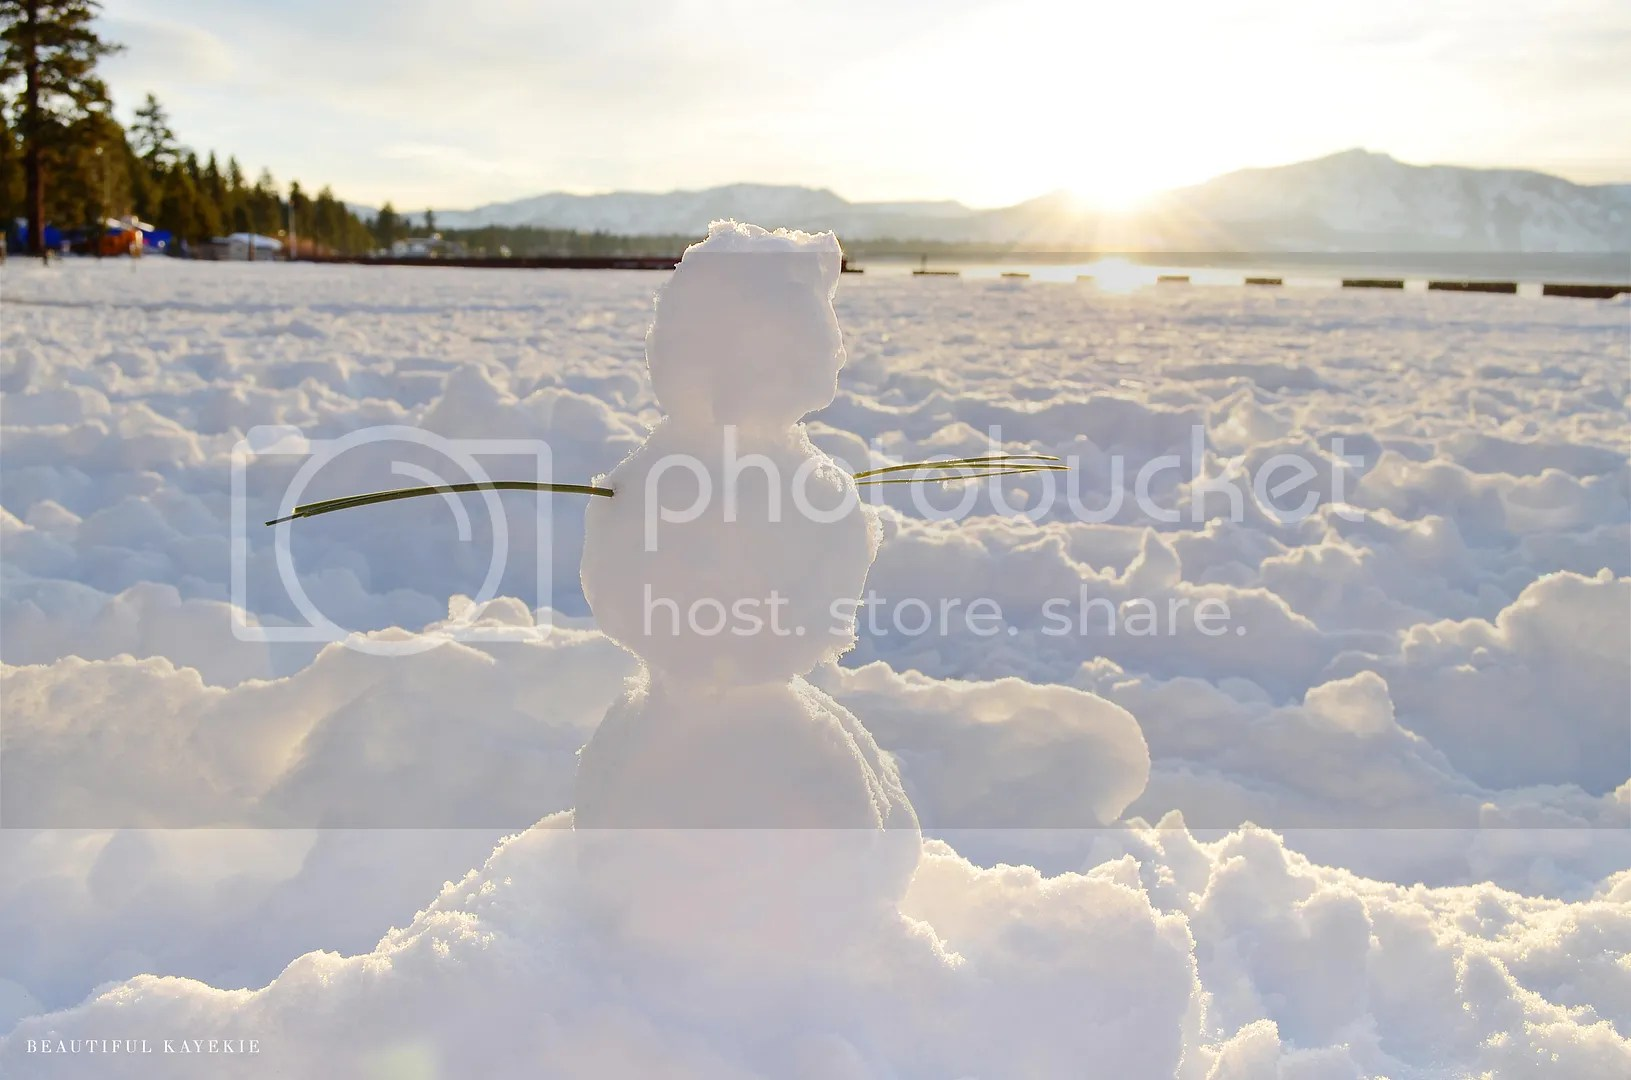 miniature snowman lake tahoe